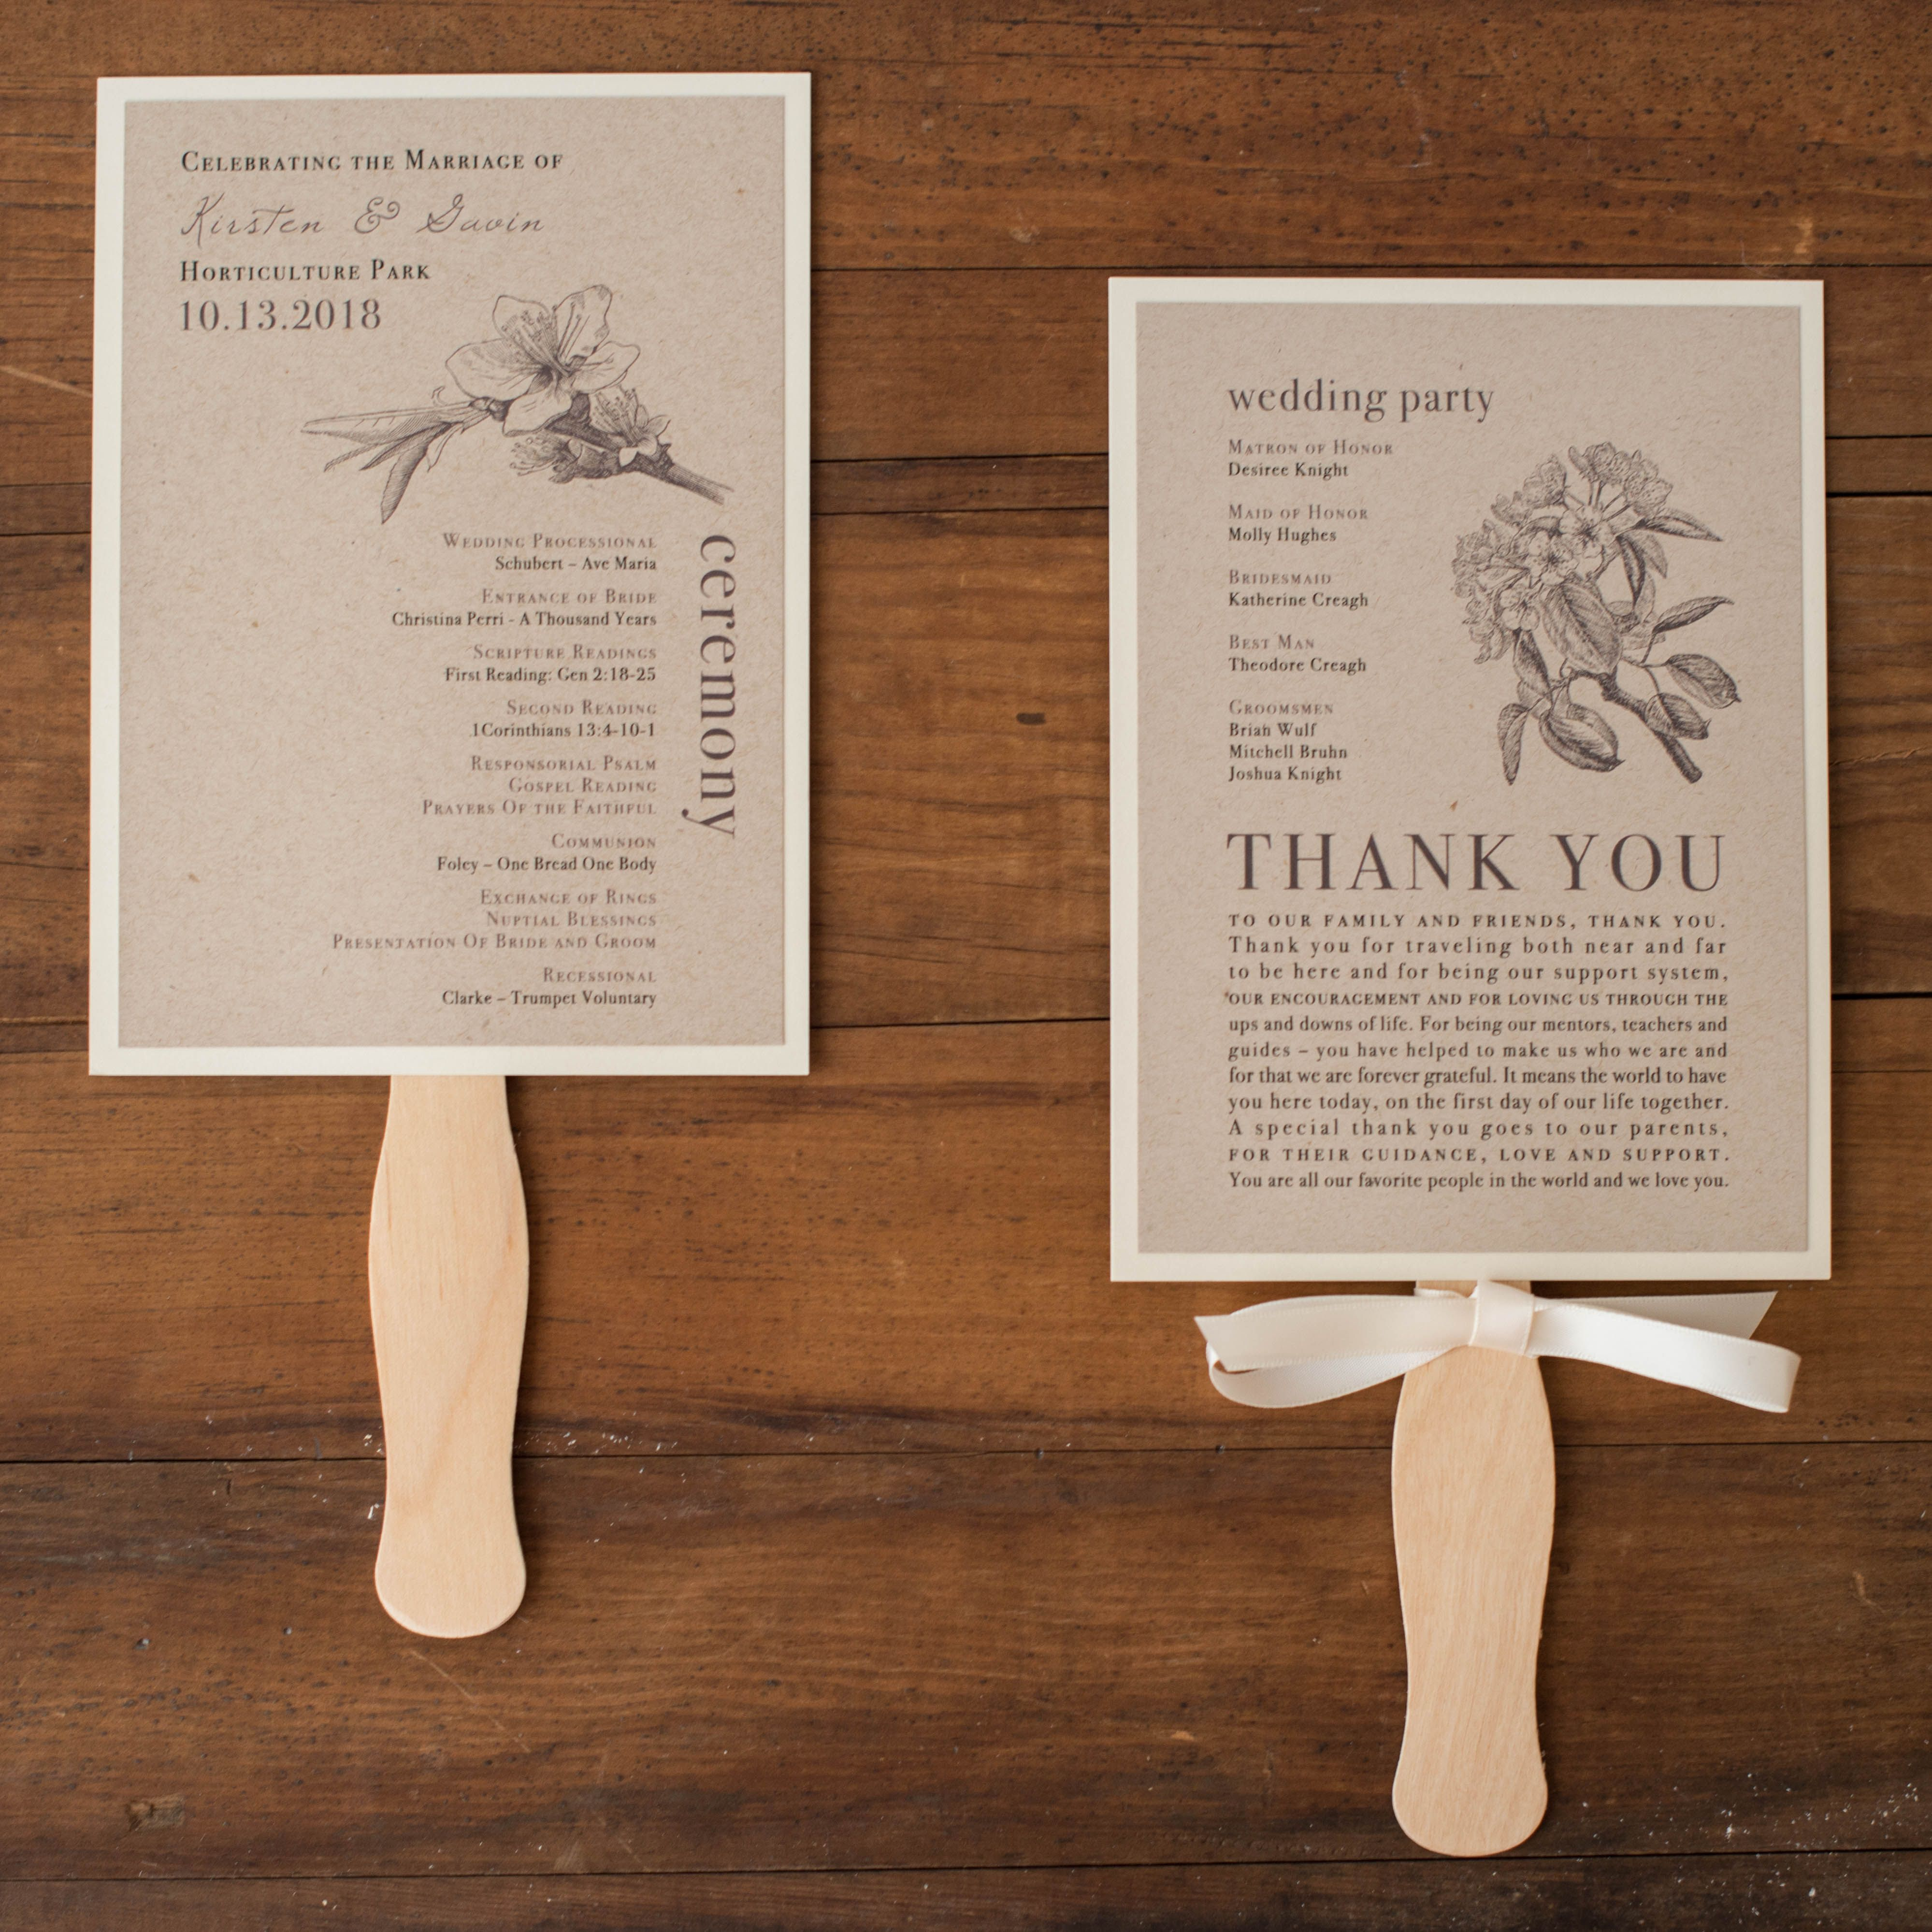 Looking for a personalized look? With the Rustic Magnolia style, Beacon Lane offers a ceremony program fan that is customizable to match your wedding.